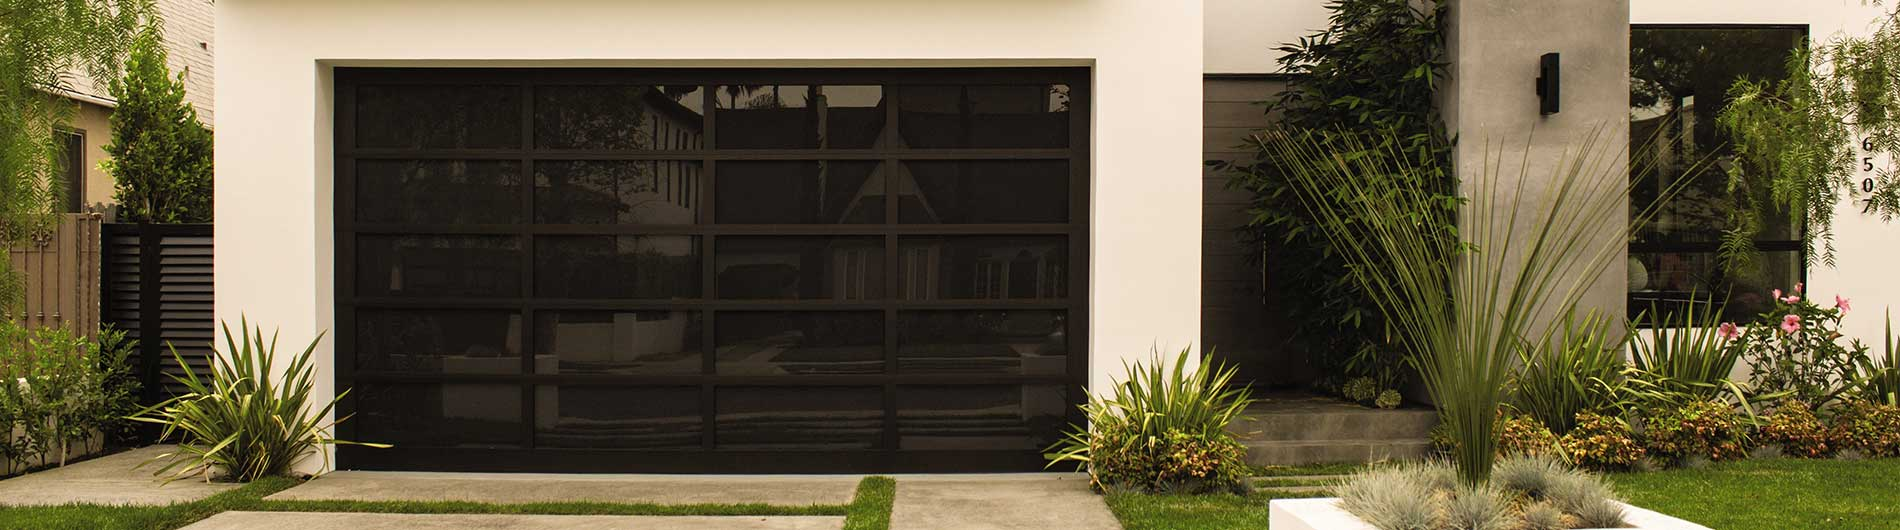 Aluminum Glass Garage Doors 8800